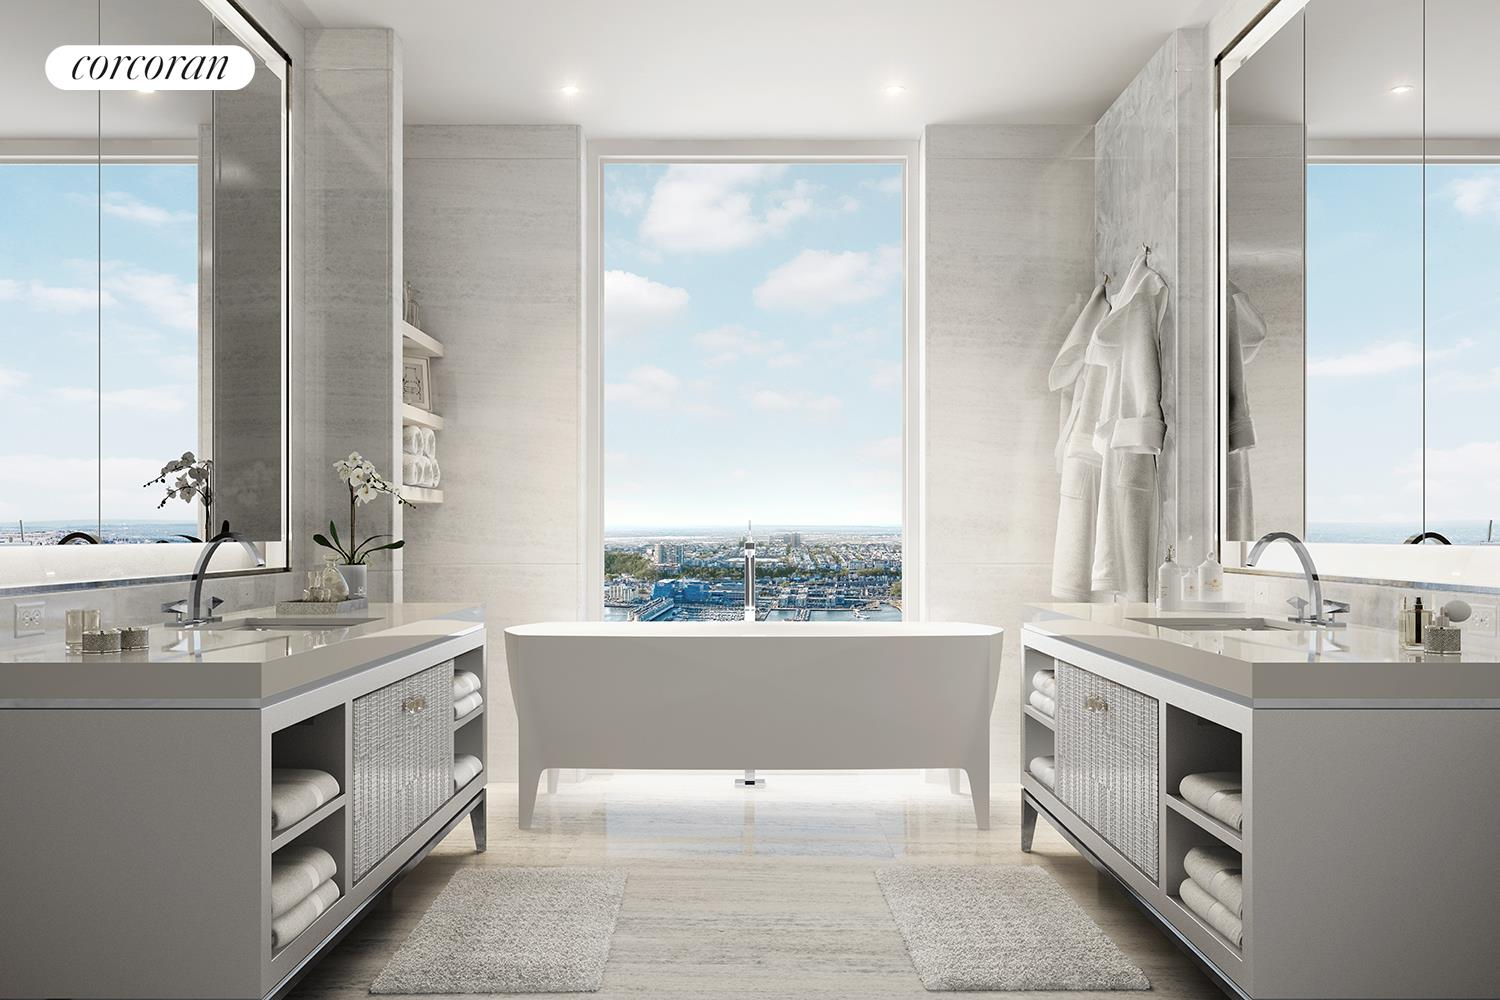 35 HUDSON YARDS, 8302, Private north west terrace